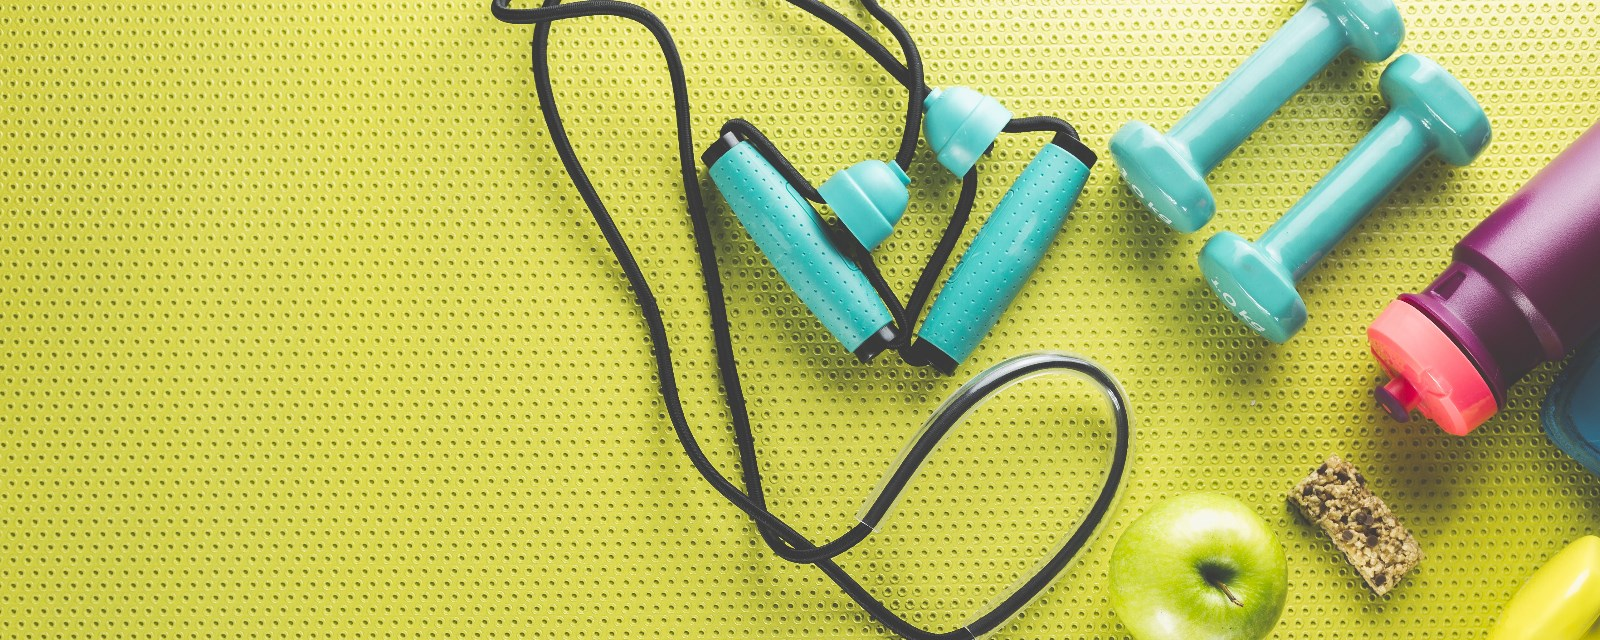 A water bottle, set of weights and jump rope laying on a bright fitness mat